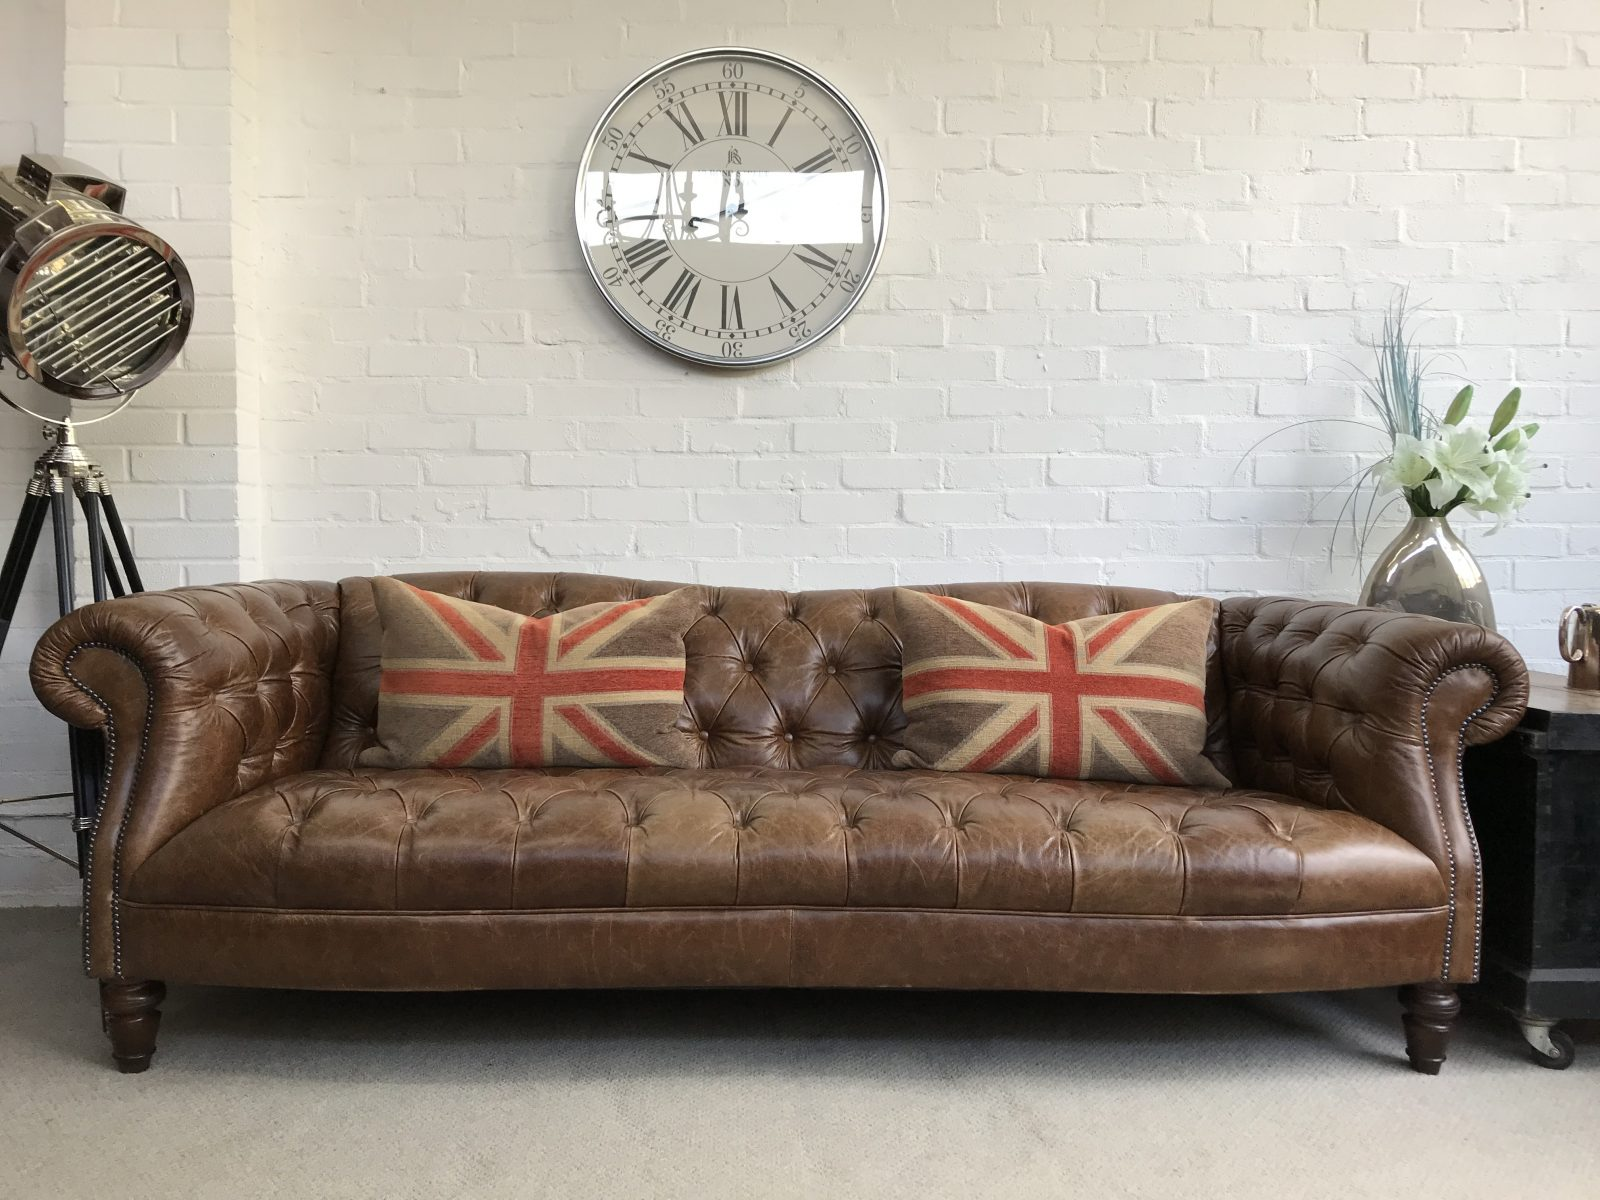 Classic Antique Whisky Tan 4 Seater Chesterfield Sofa.